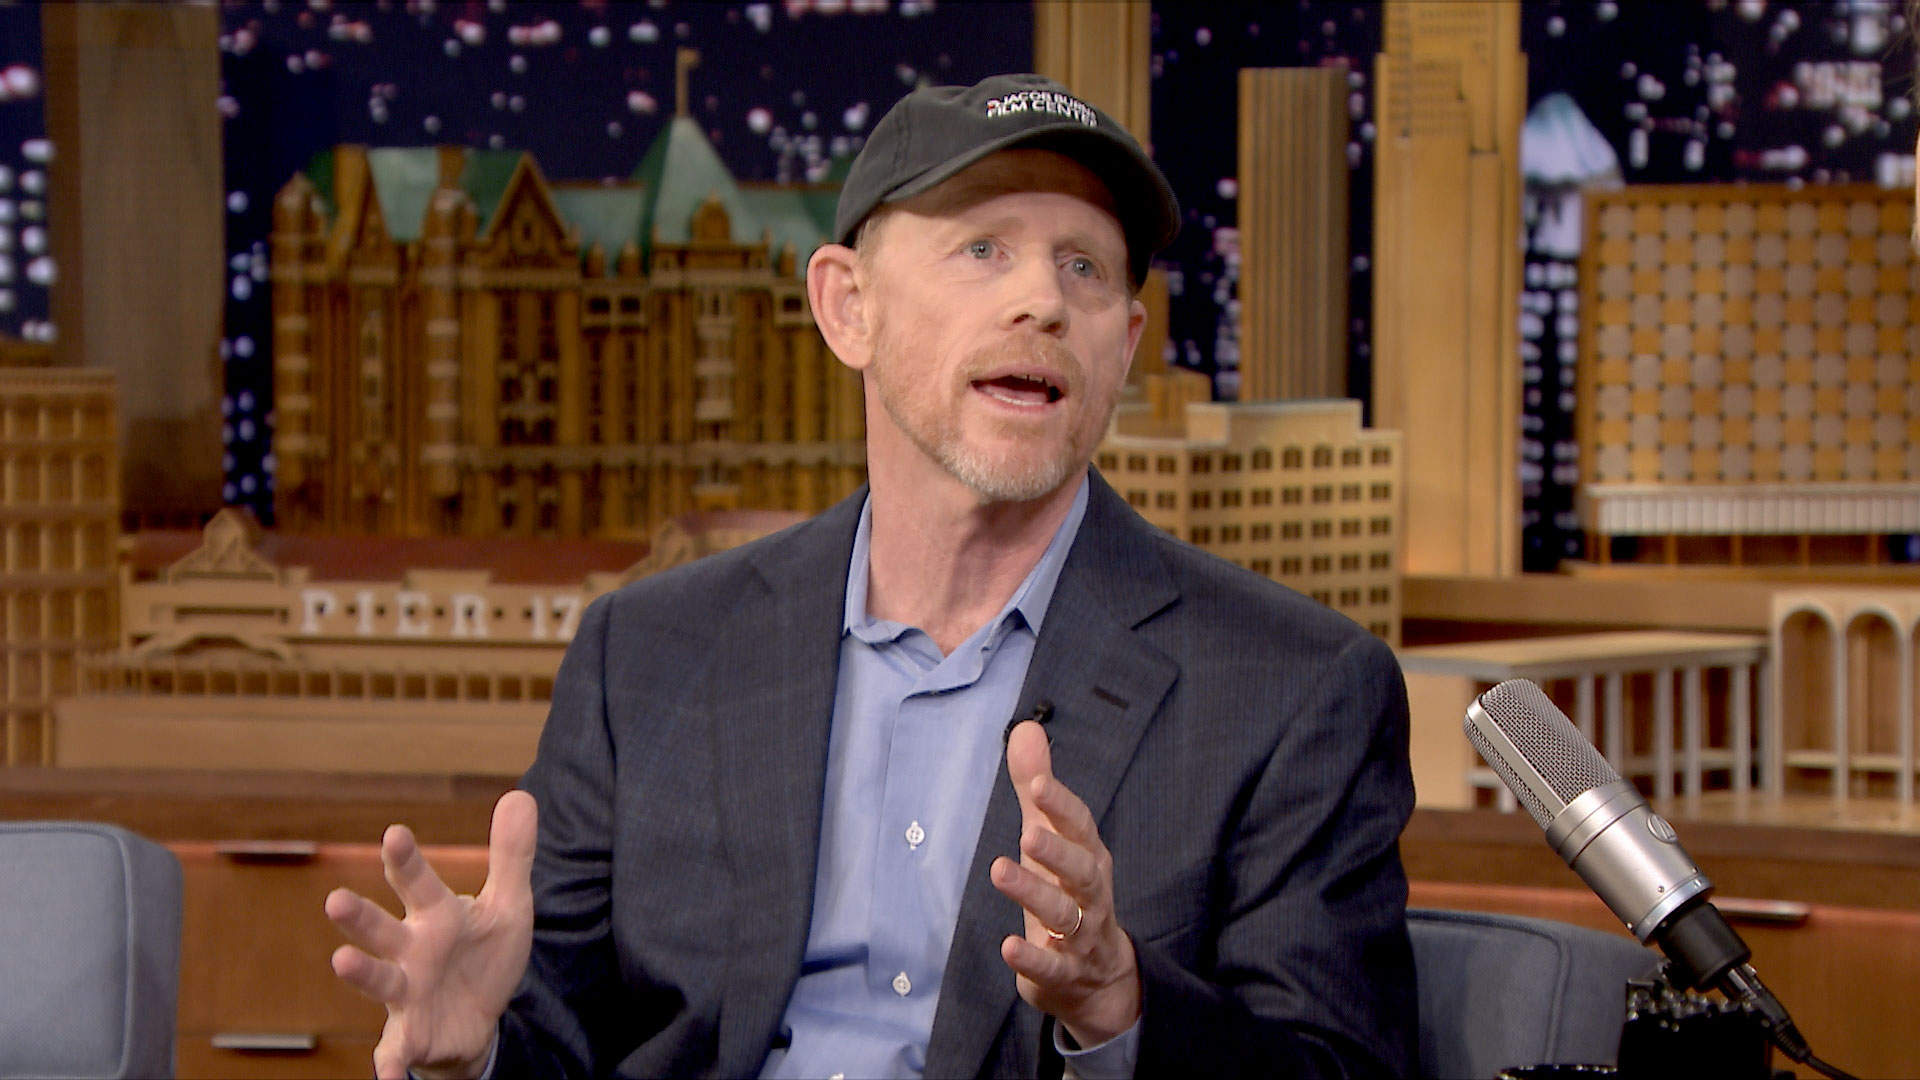 Ron Howard High